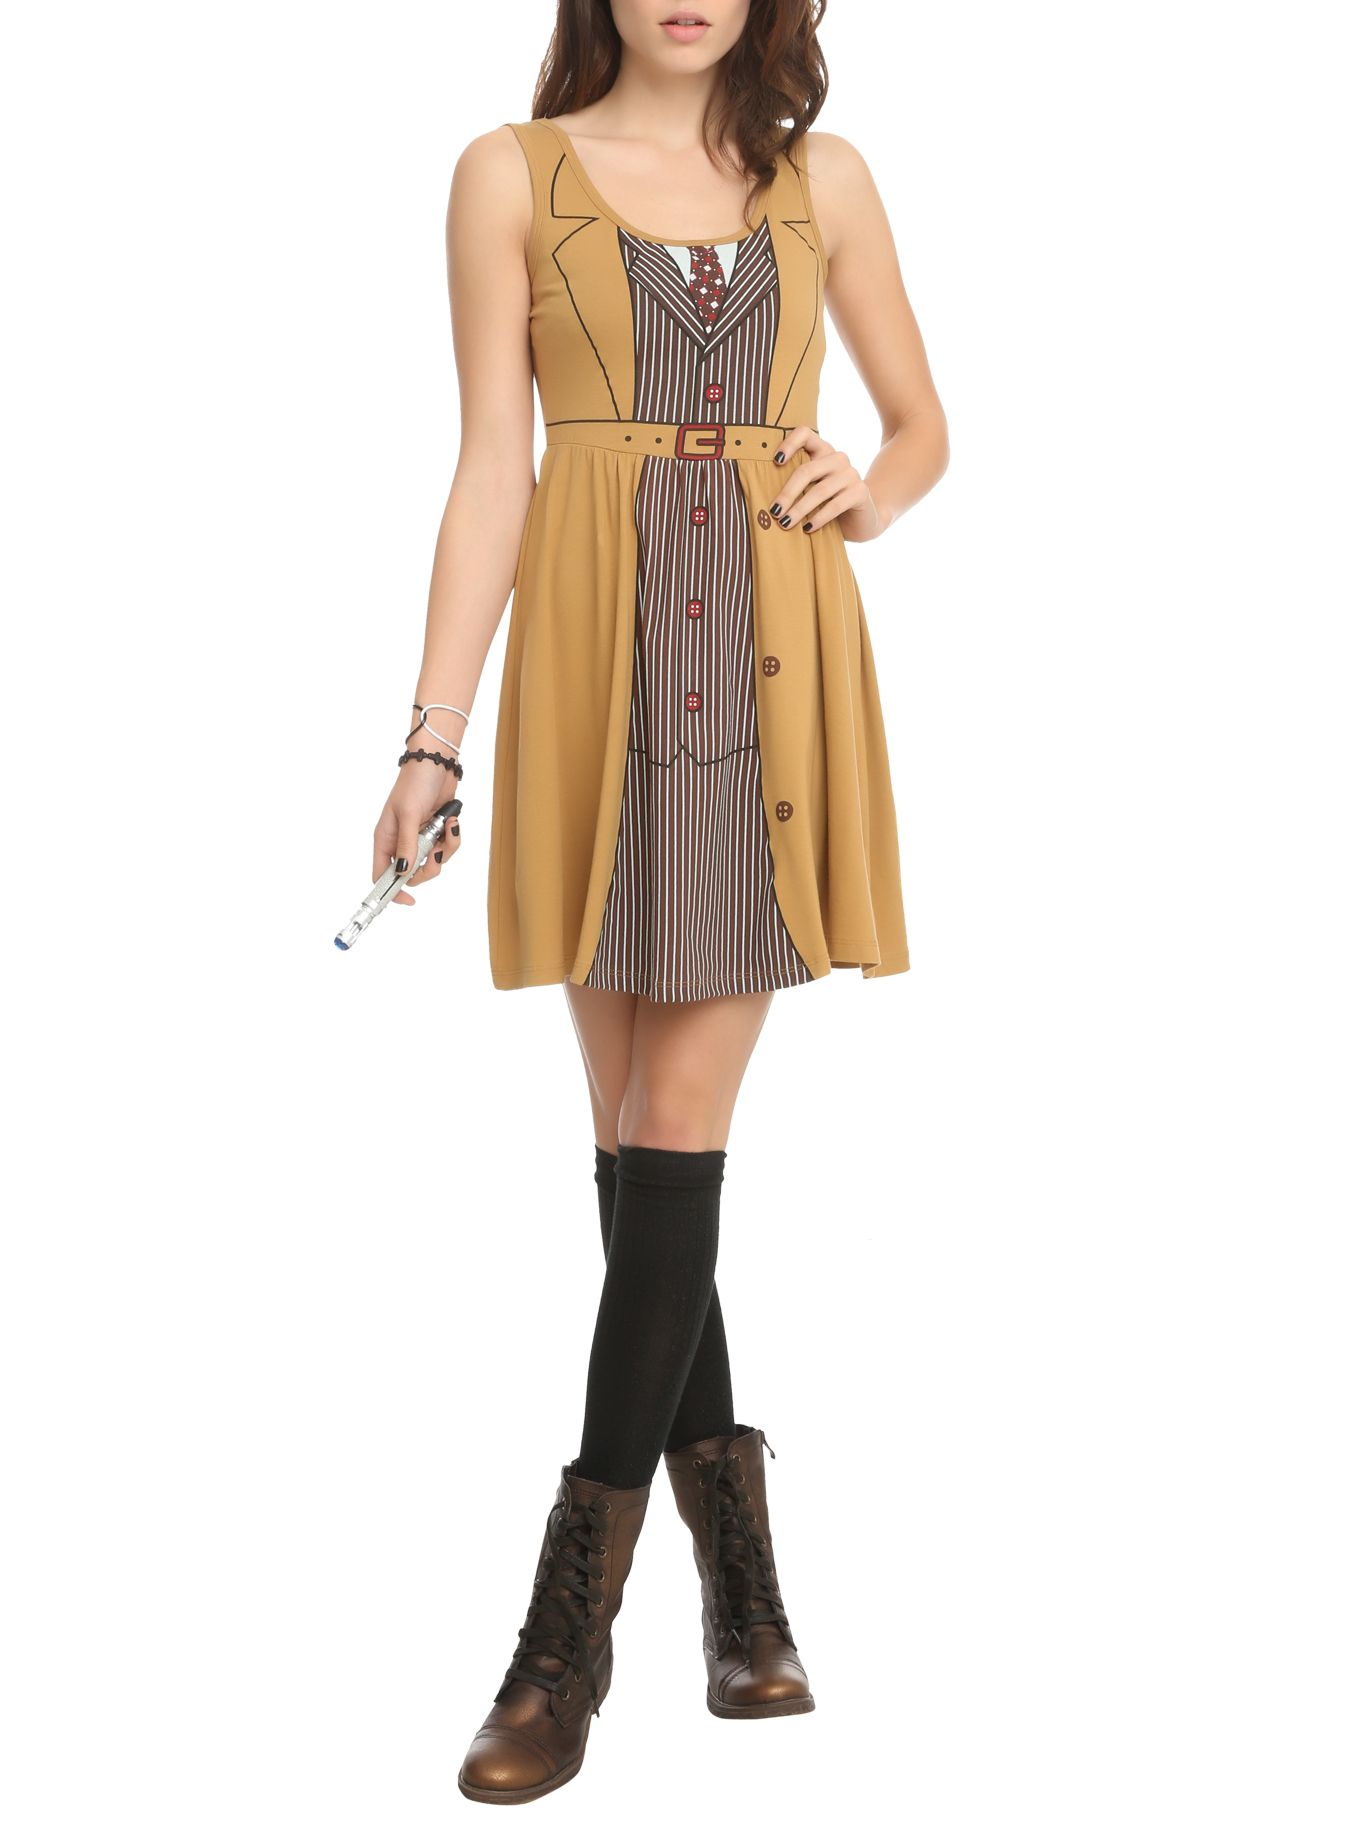 Doctor Who Her Universe David Tennant Tenth Doctor Costume